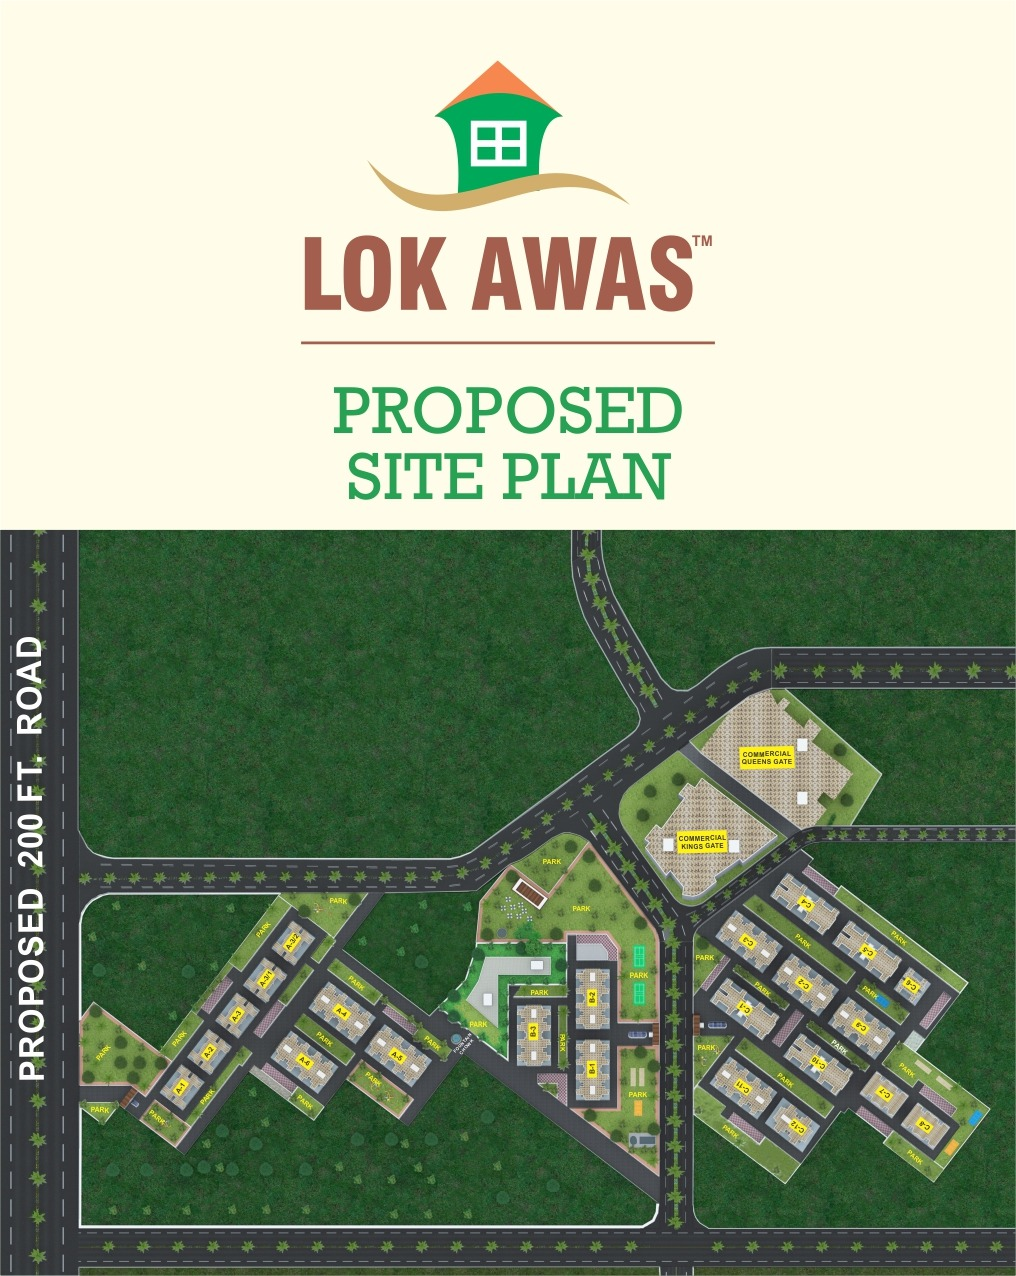 Proposed Site Plan - Lok Awas